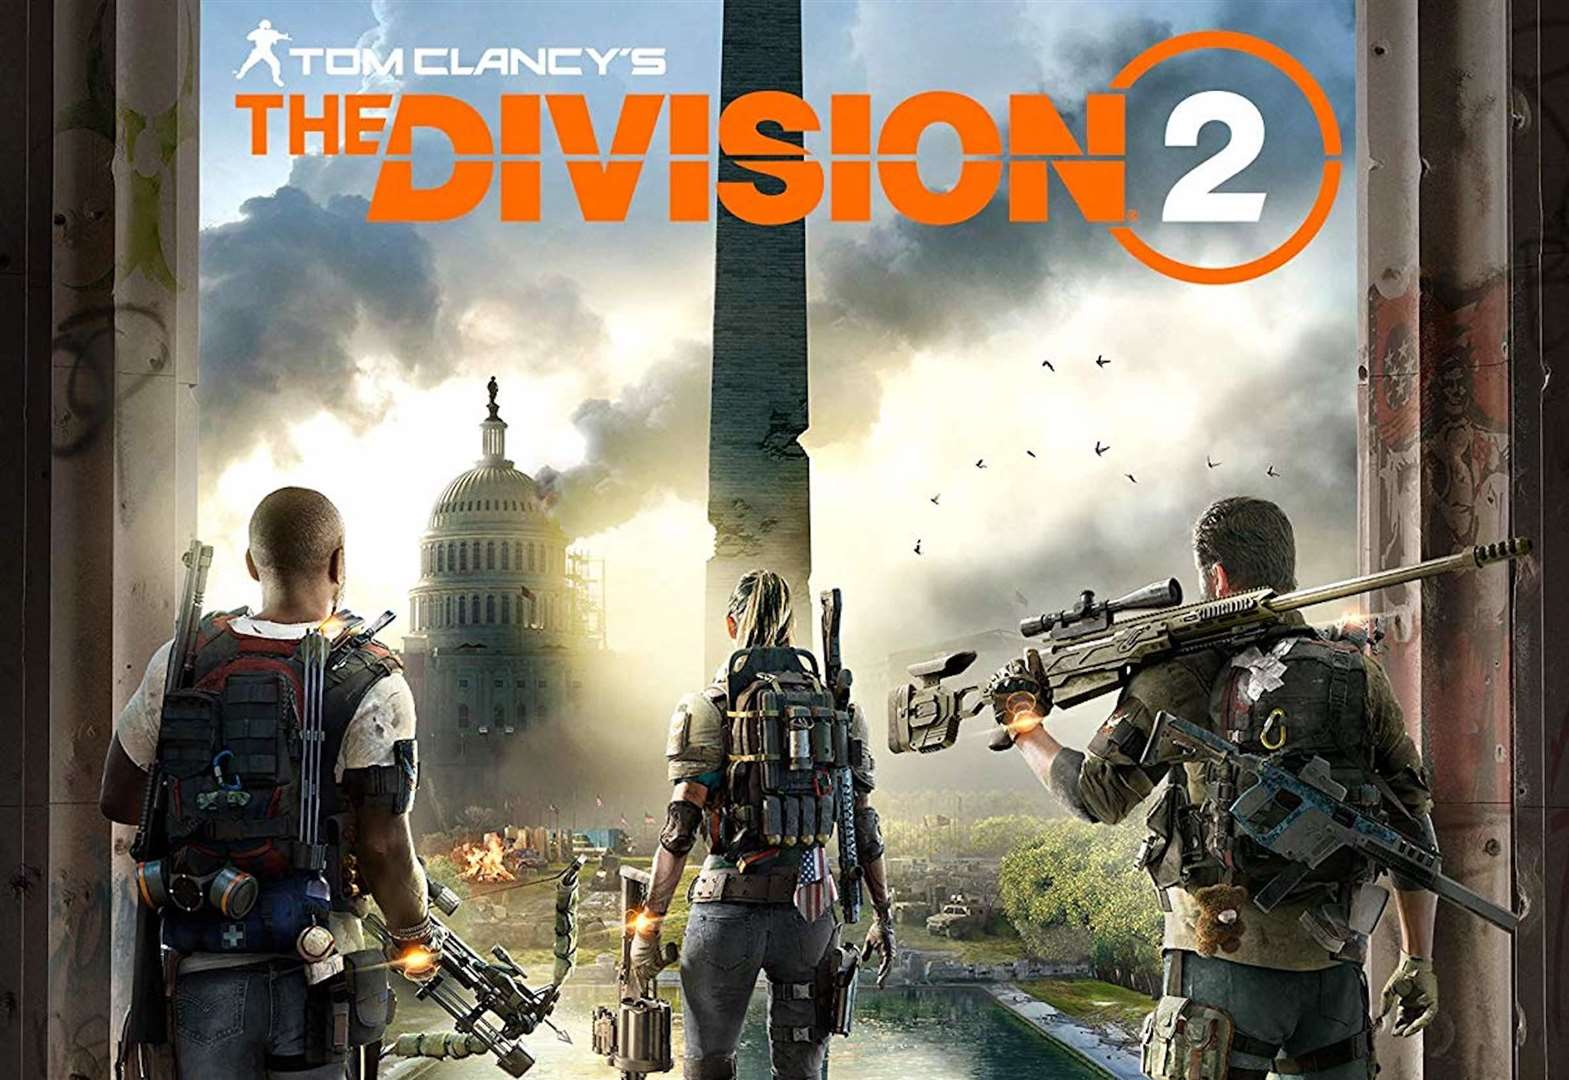 VIDEO GAME REVIEW: The Division 2